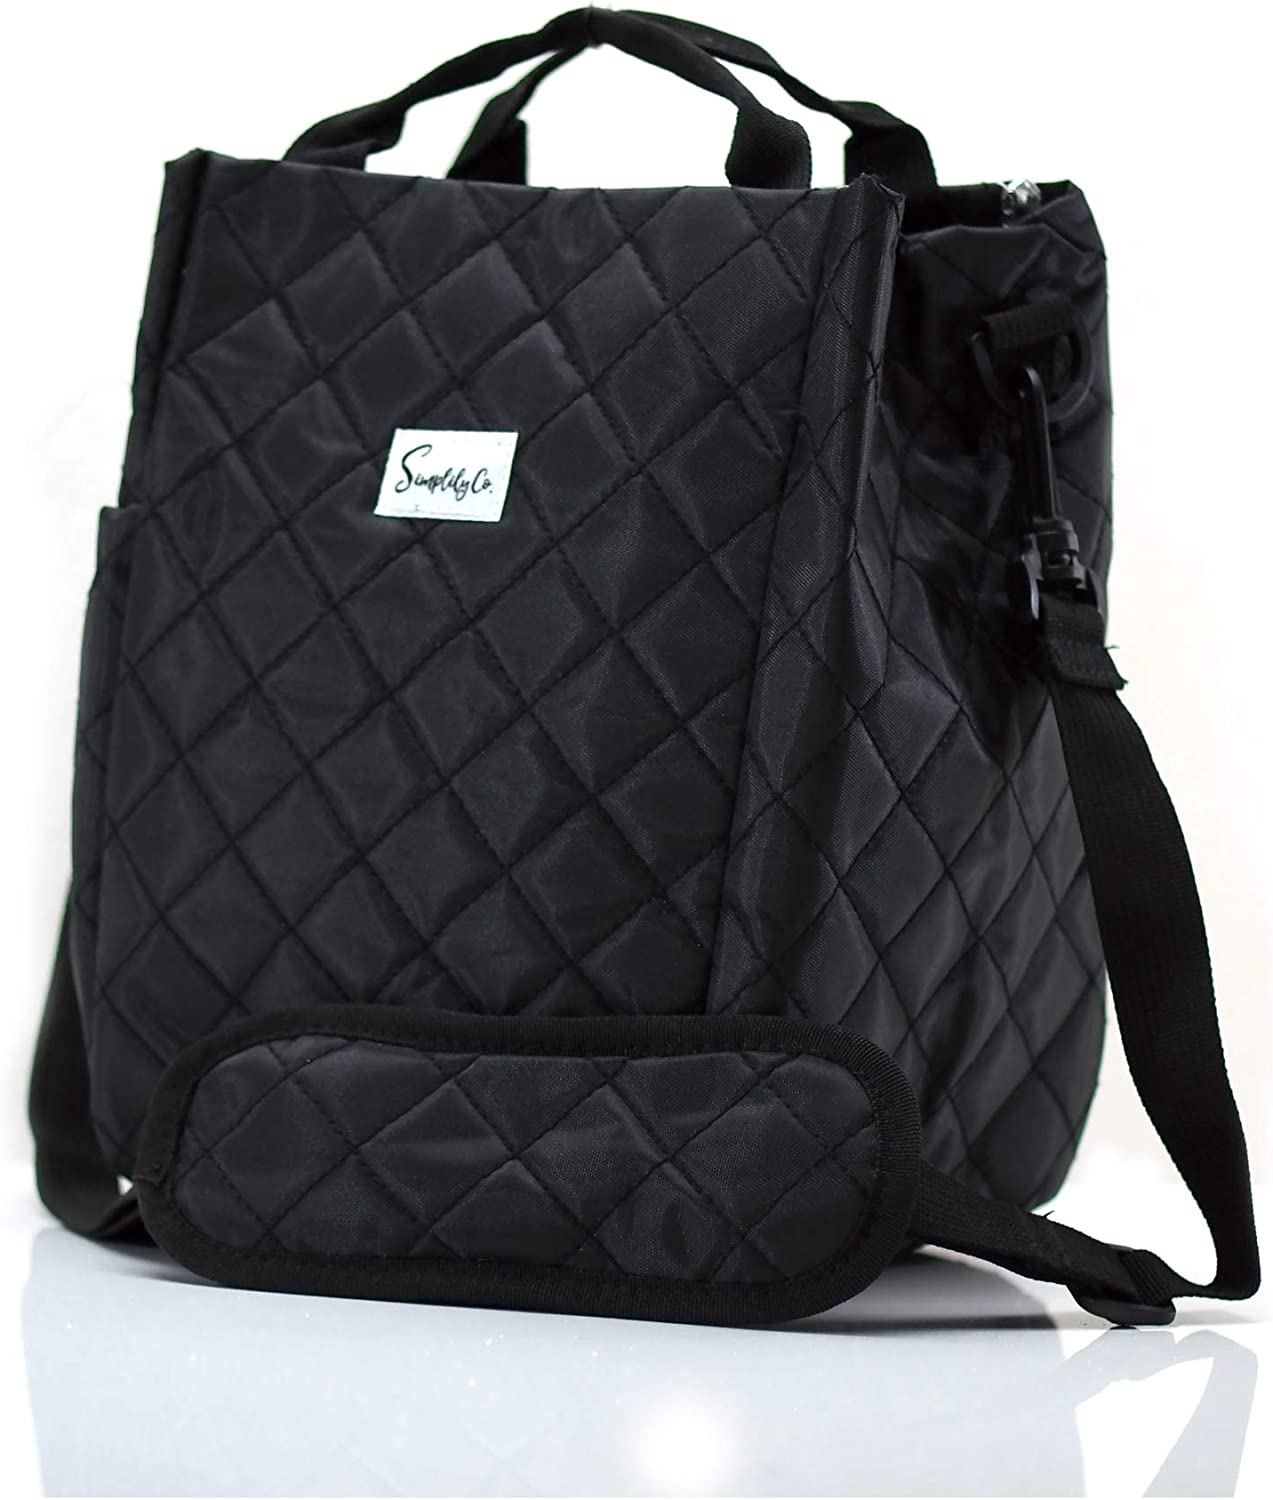 Simplily Co. Insulated Lunch Bag with Shoulder Strap and Drink Side Pocket (Black (9 inches tall))